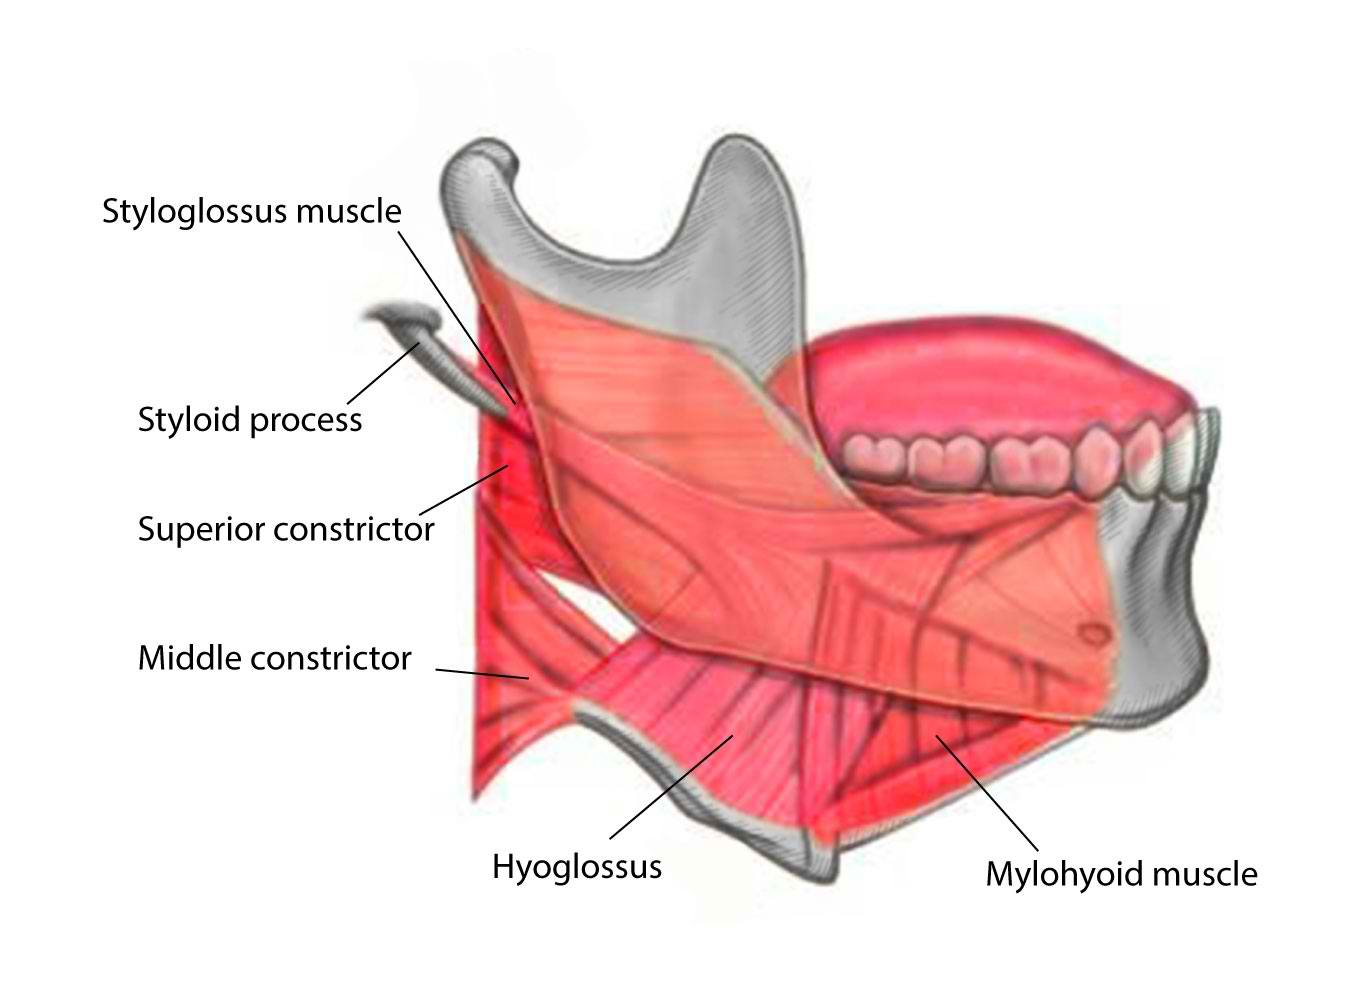 Styloglossus, Middle constrictor, Hyoglossus, and Mylohyoid Muscles